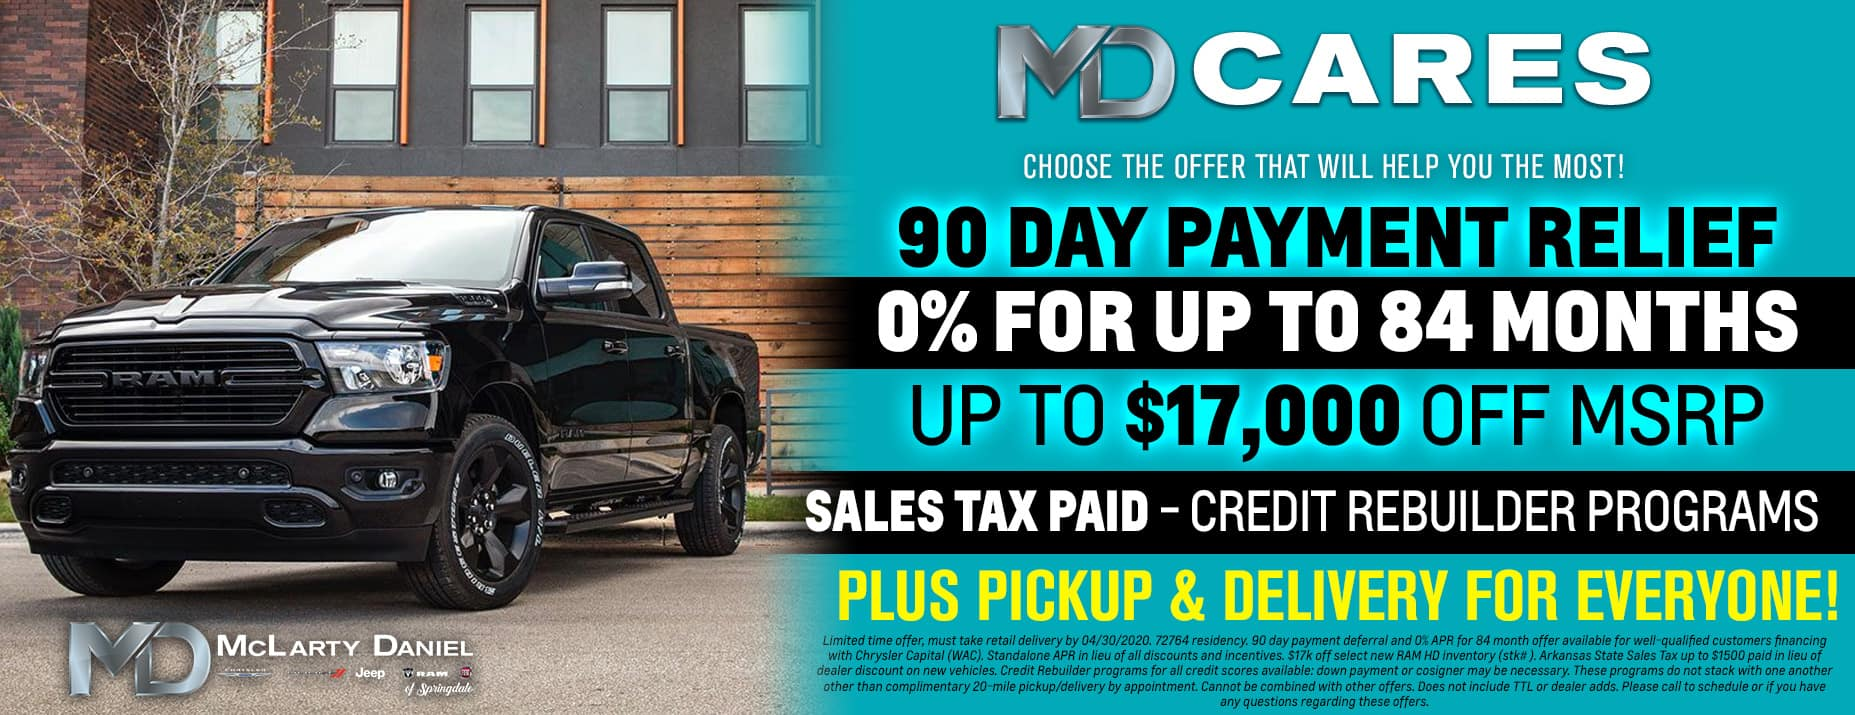 MD CARES: Choose The Offer That Will Help You The Most! 90 Day Payment Relief - 0% for up to 84 months - Up to $17,000 off - Sales Tax Paid - Credit Rebuilder Programs …. PLUS Pickup & Delivery for Everyone!